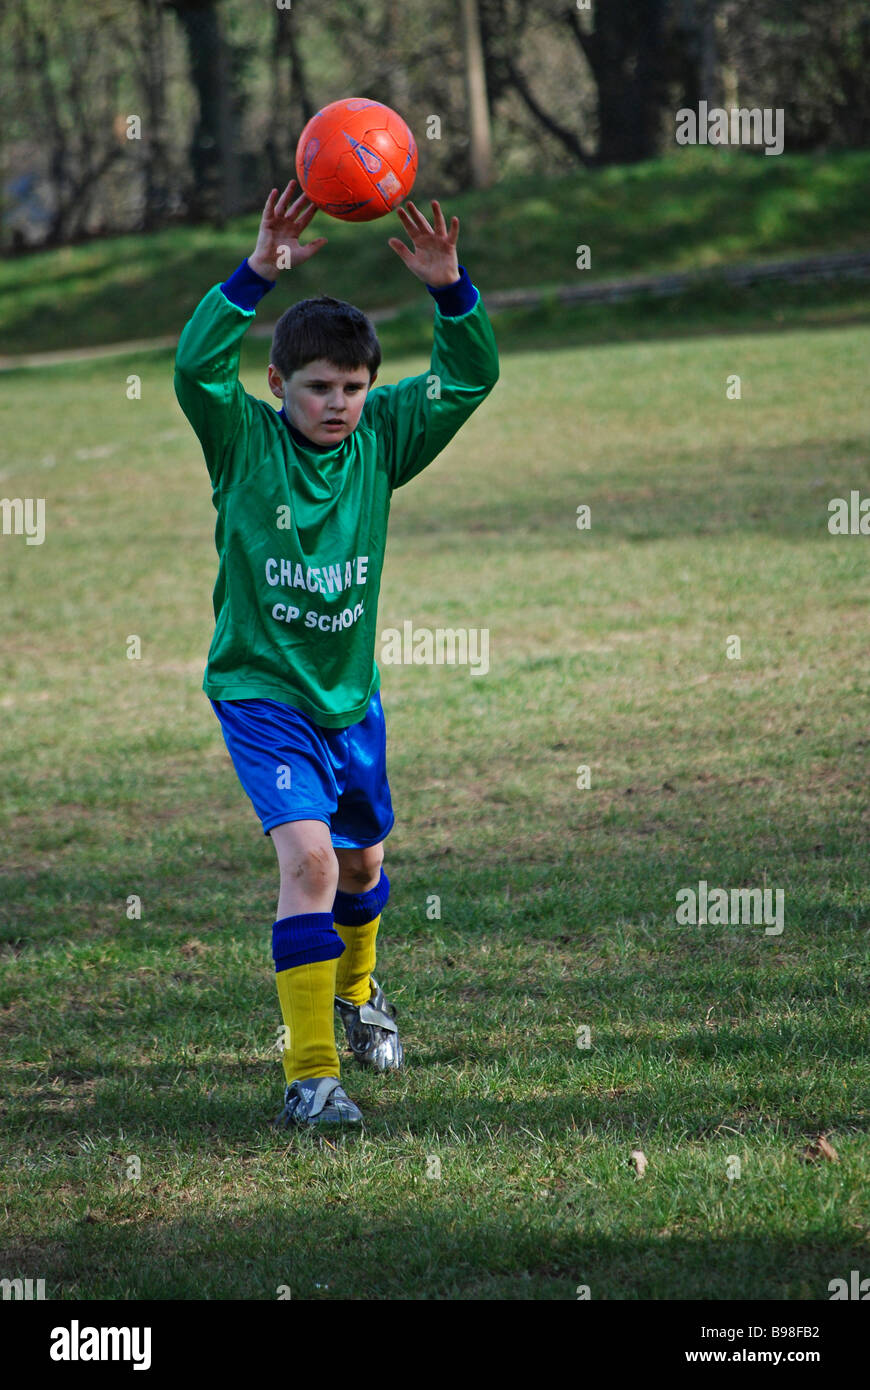 a young boy taking a 'throw in' during a footbal match - Stock Image